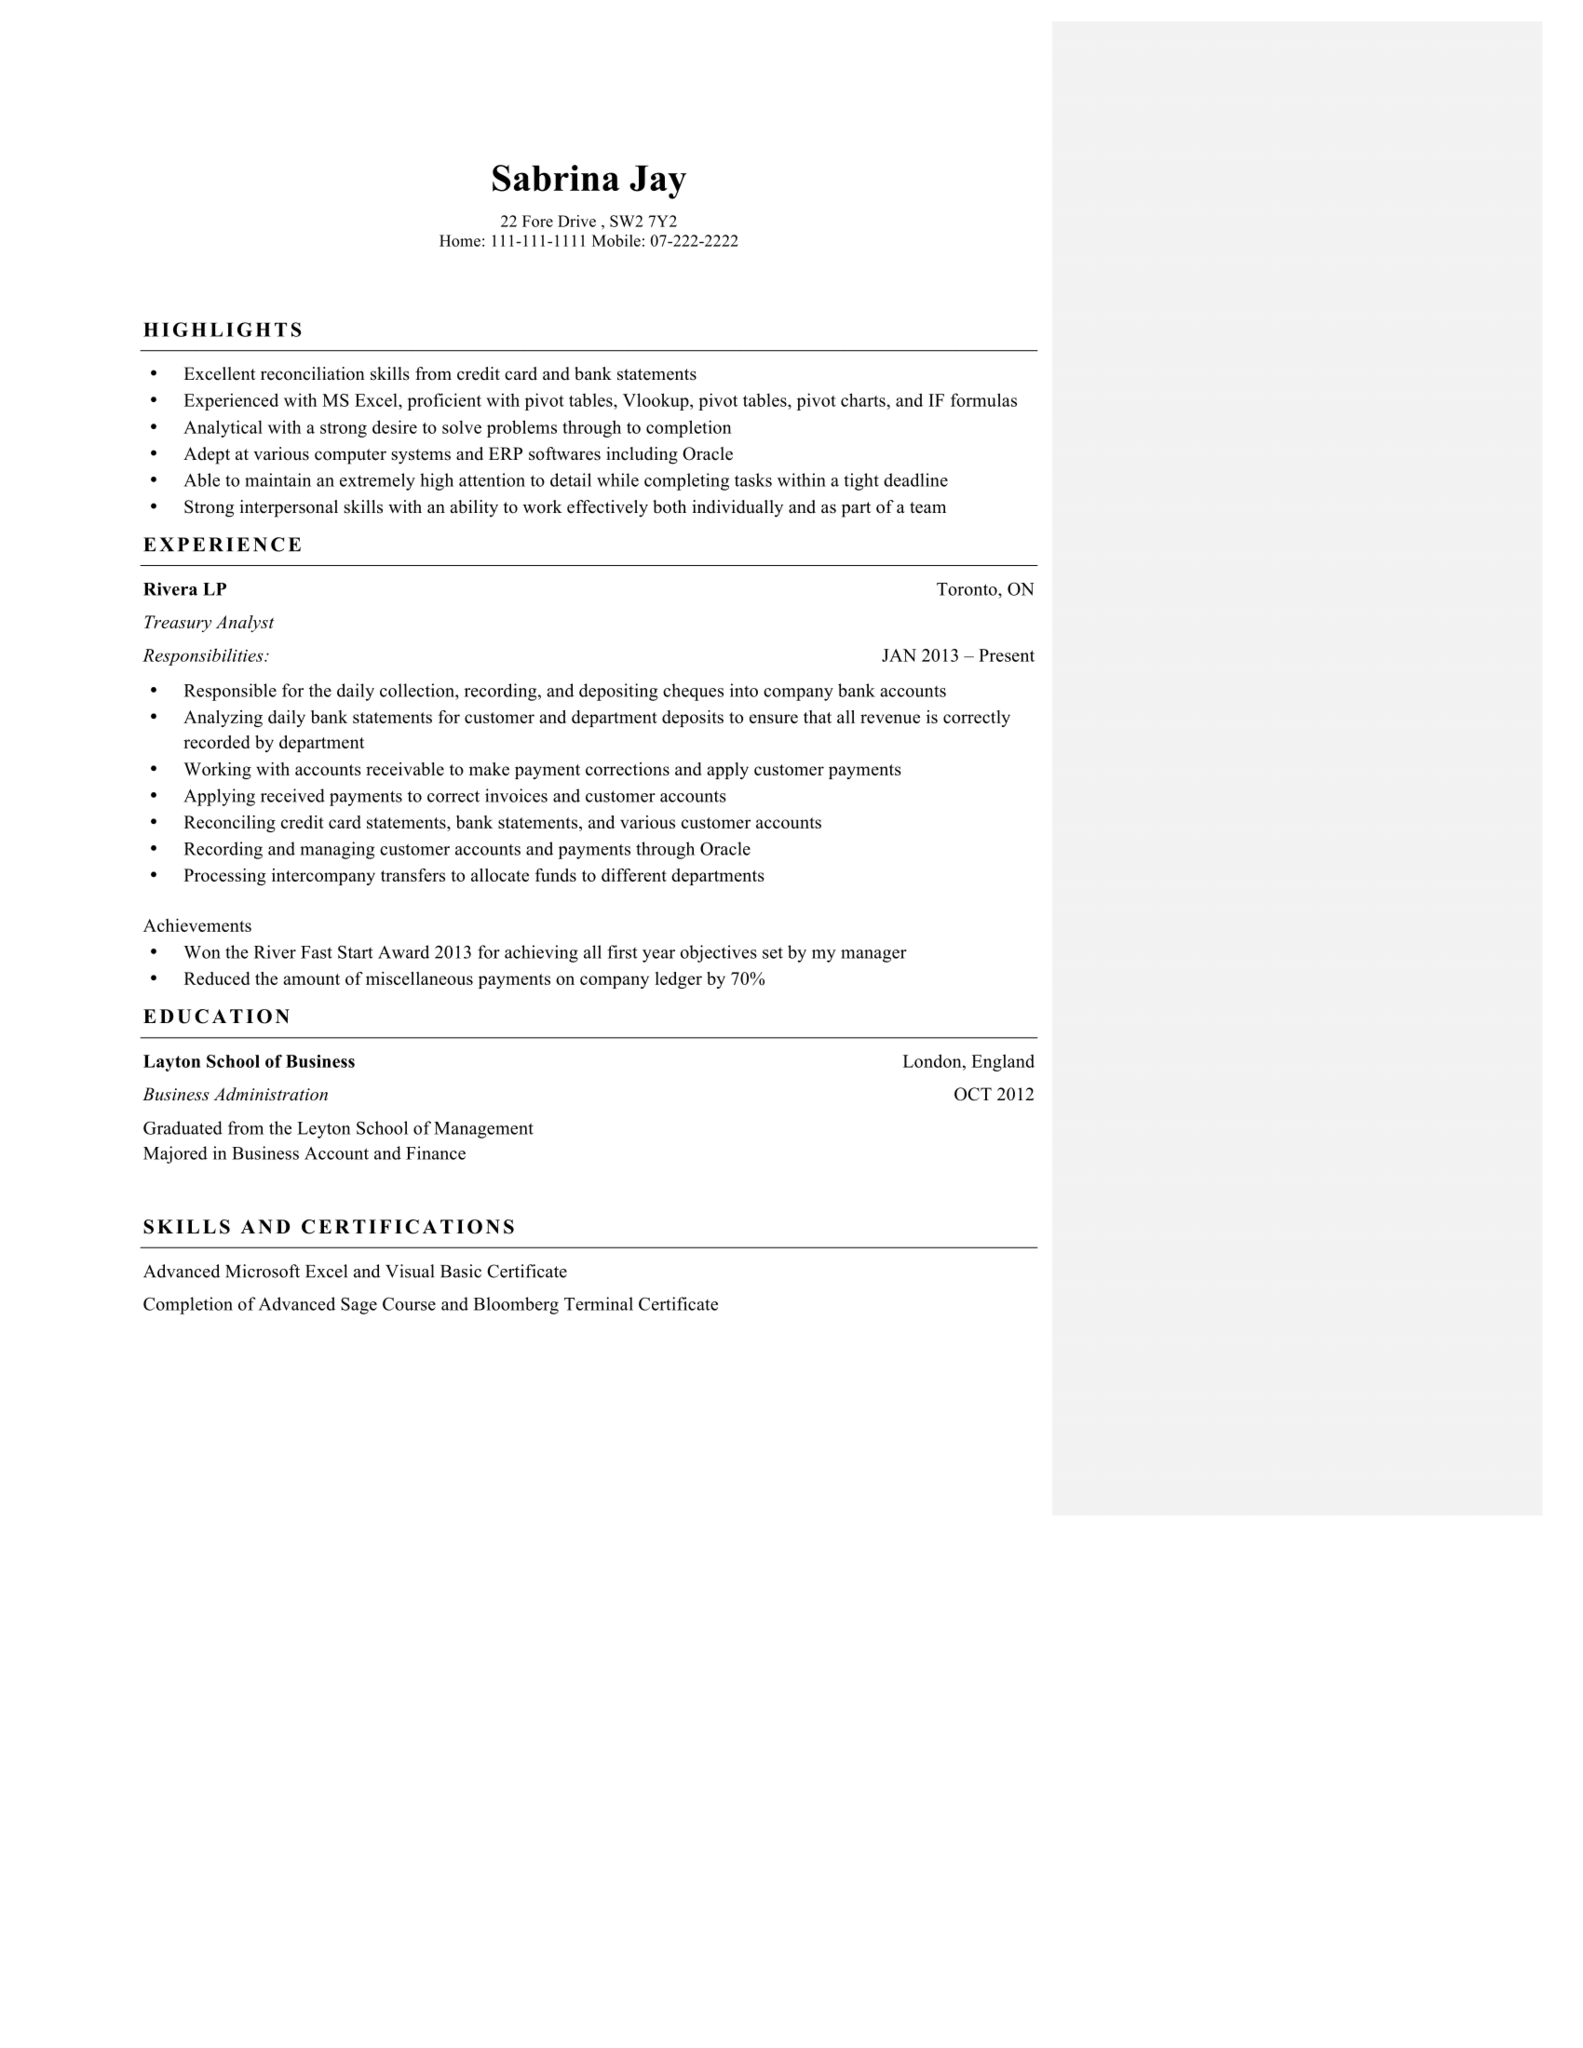 Construction Supervisor Resume Excel Samples Of Our Proofreading And Editing Services  Postscrib Video Resumes with Reporting Analyst Resume Word Excellent   Objectives In Resume Pdf